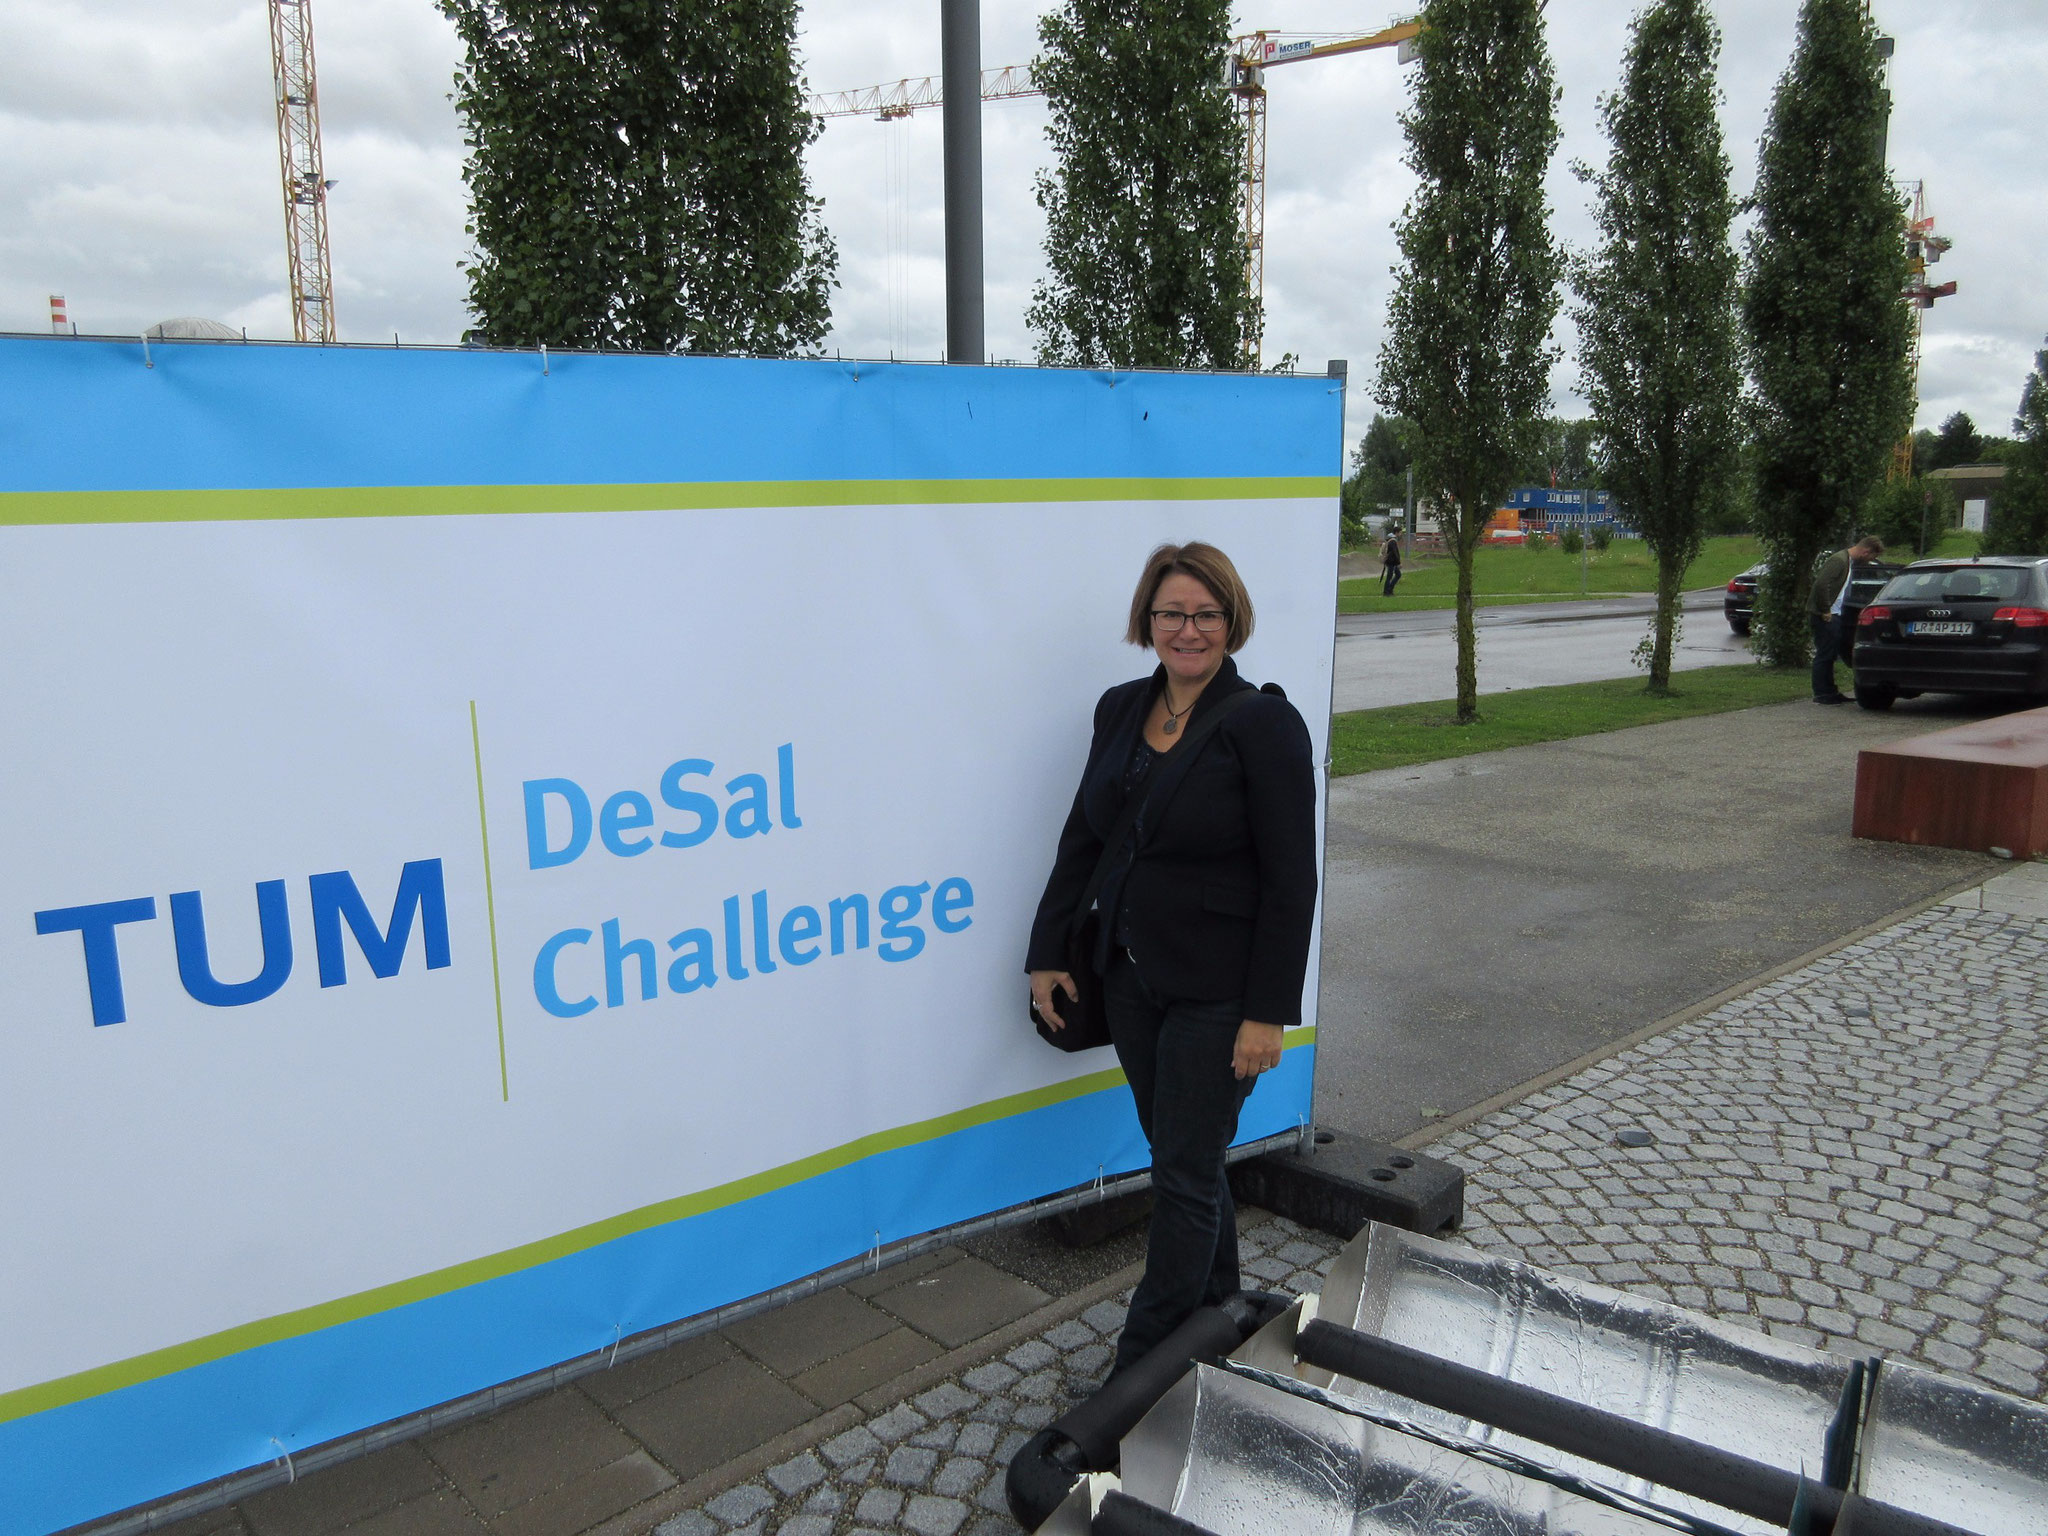 TUM DeSal Challenge 2016, the competition on renewable seawater desalination of Technische Universität München!